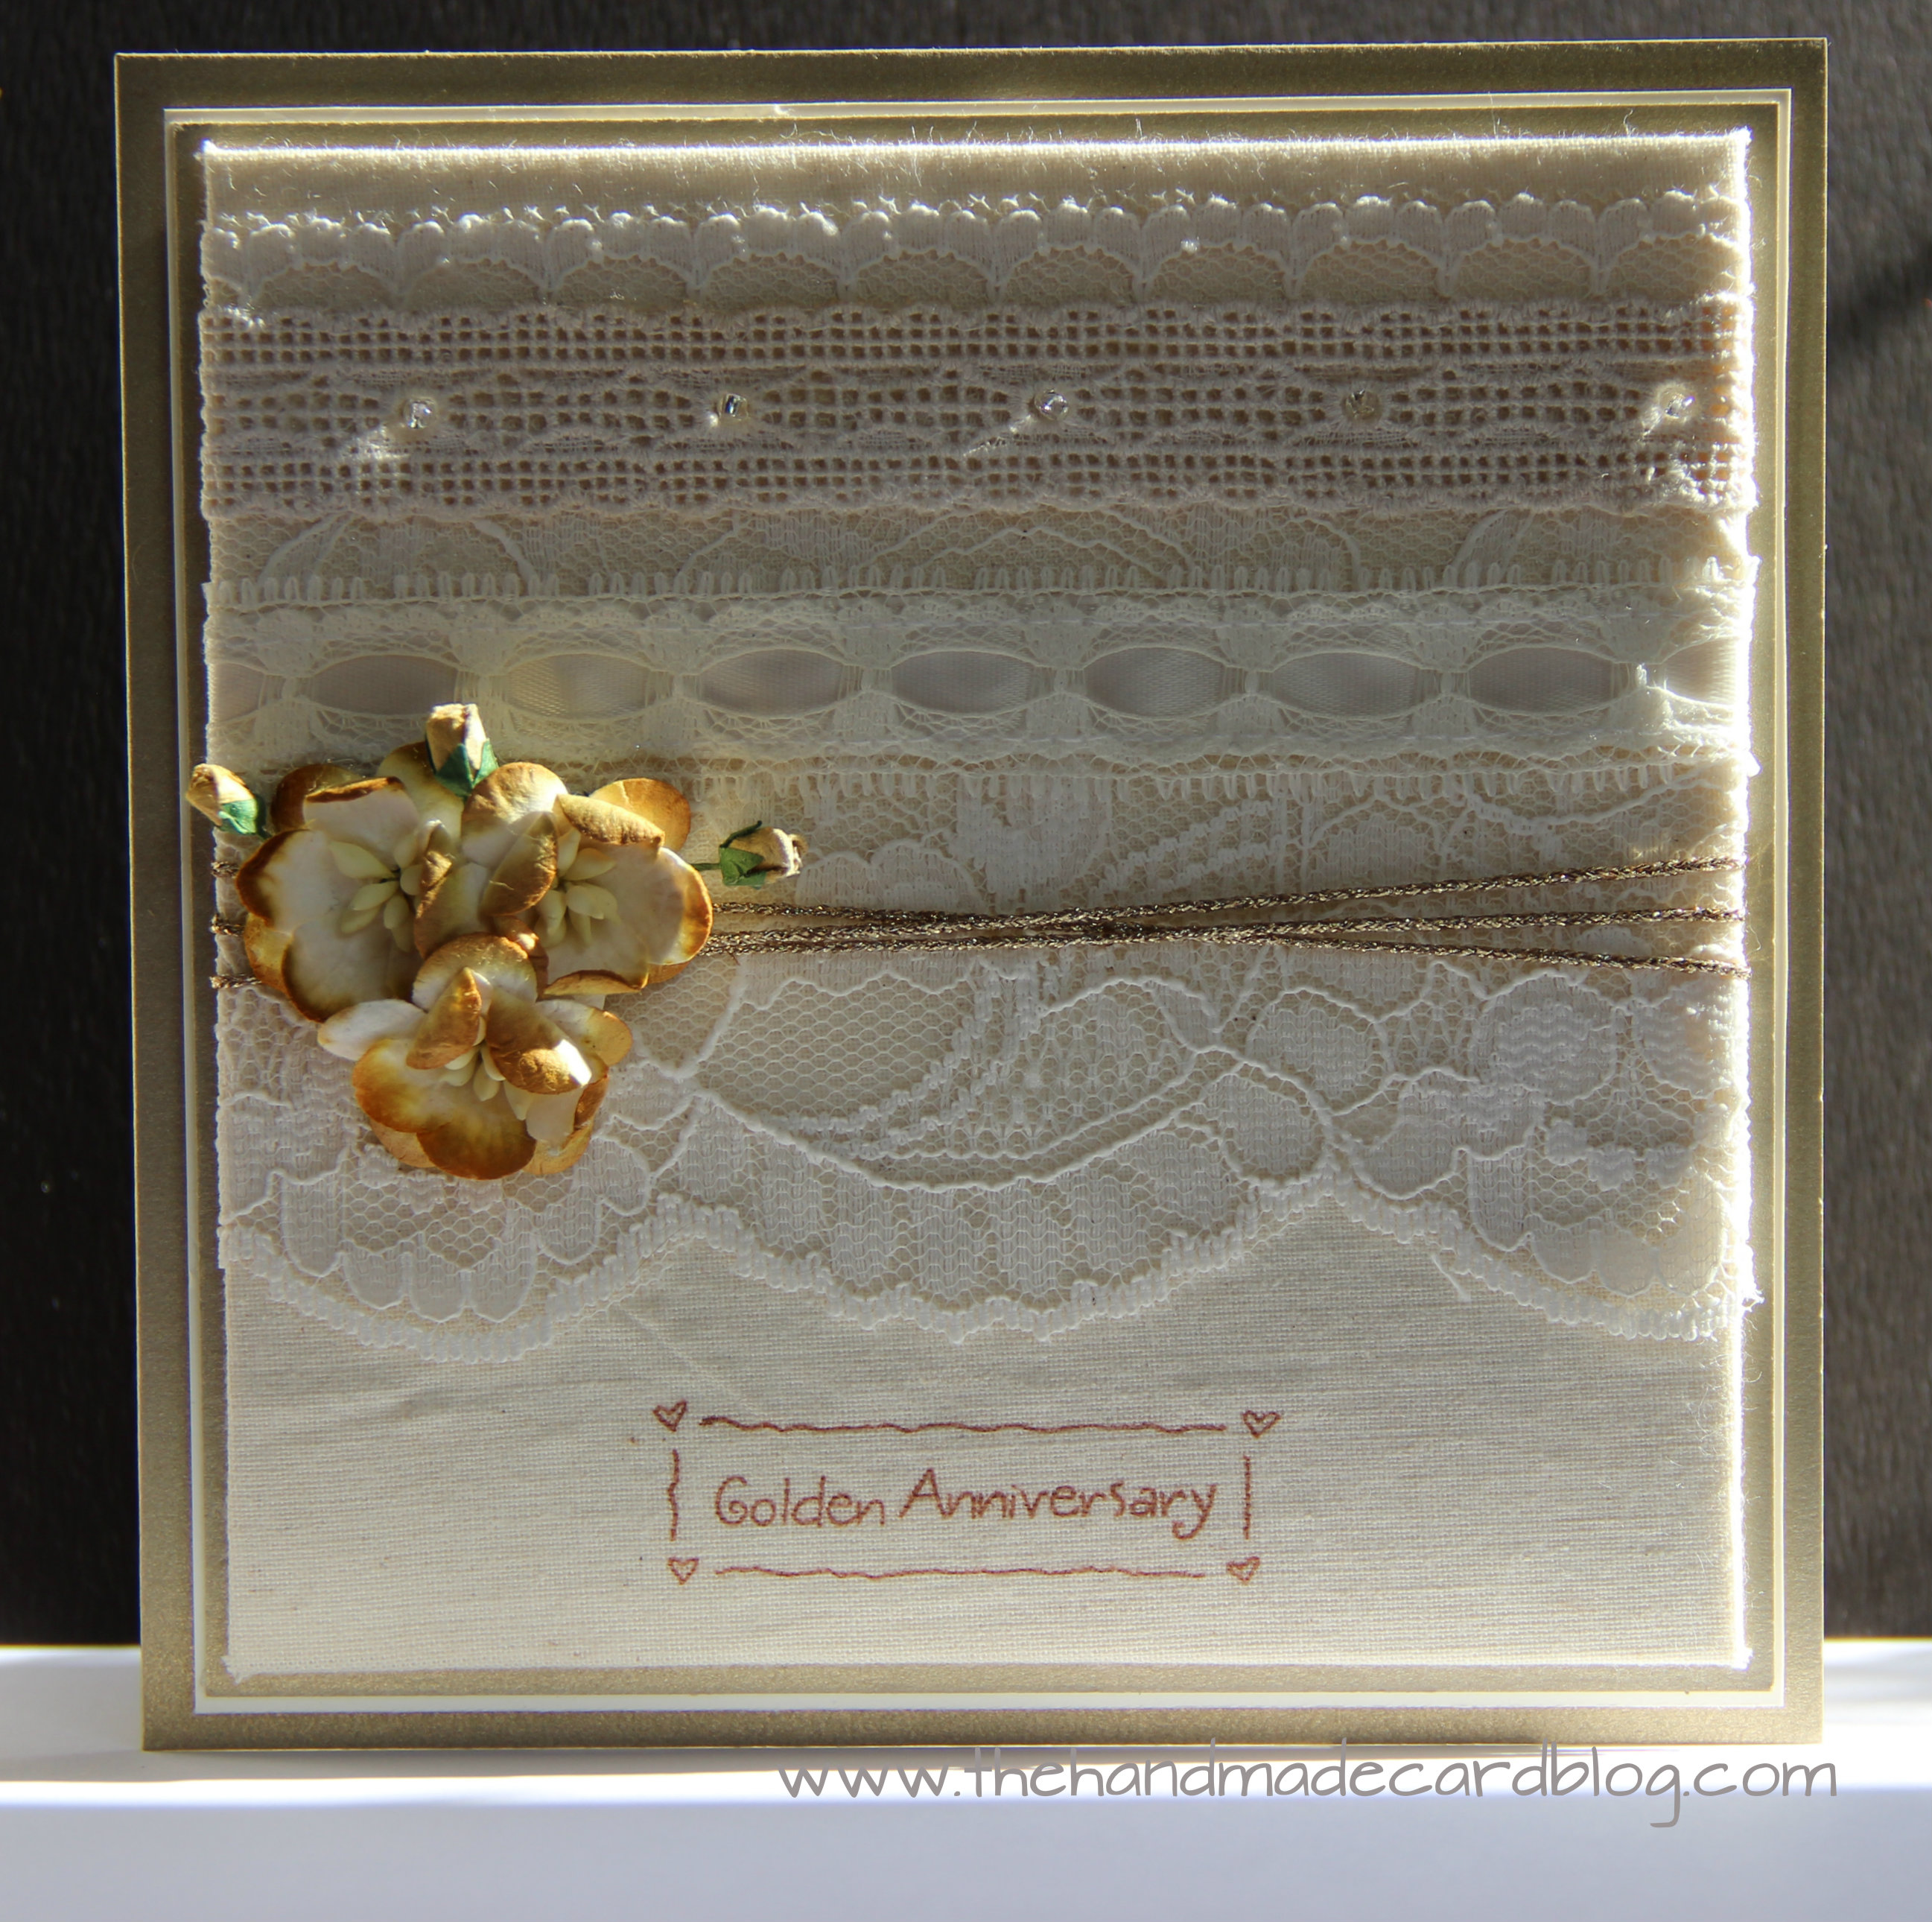 50th Wedding Anniversary Card | The Handmade Card Blog